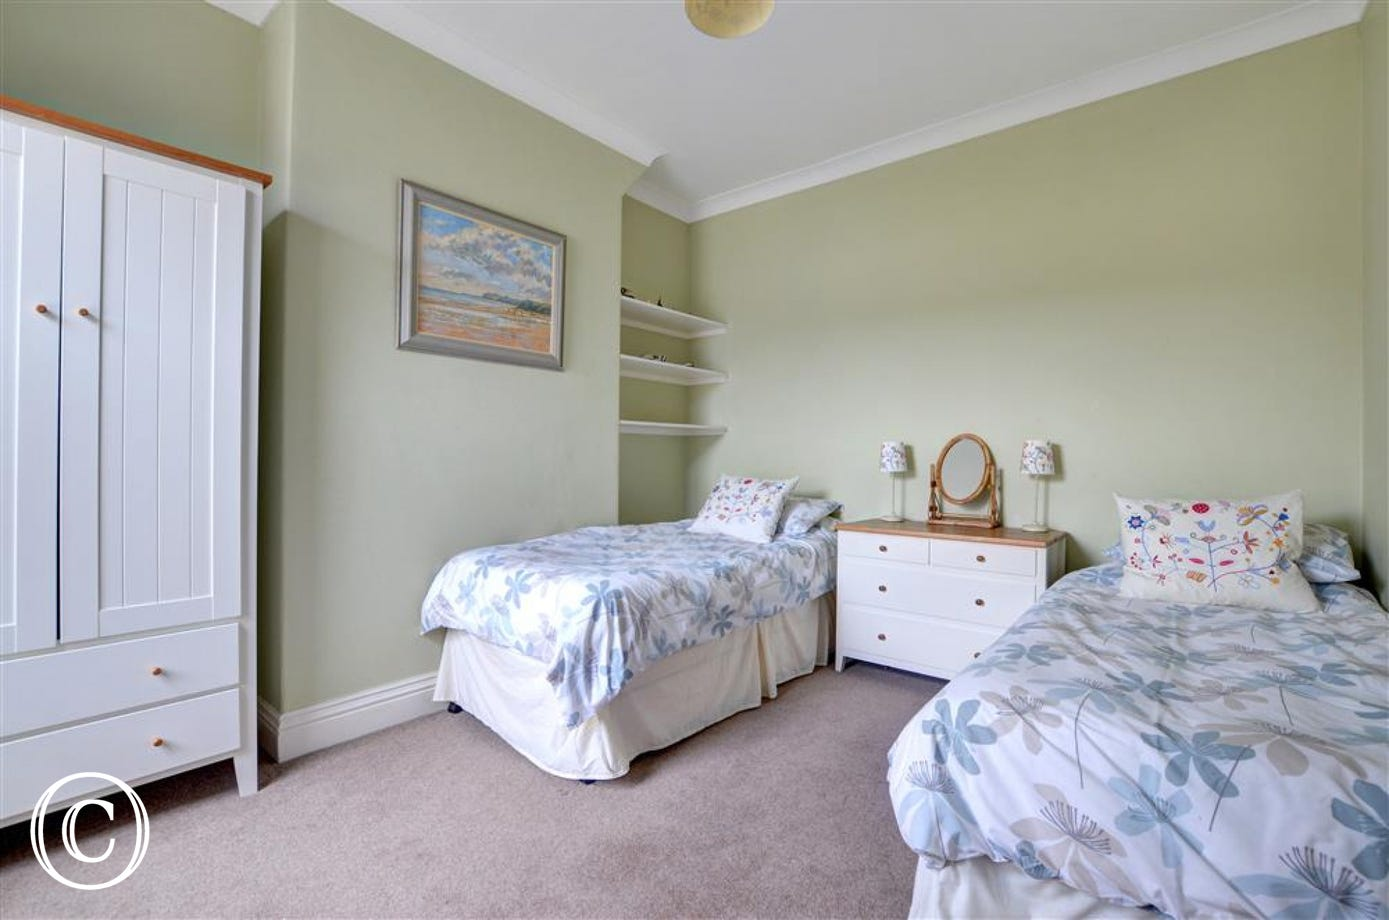 This twin Bedroom has a chest of drawers and wardrobe for storage.